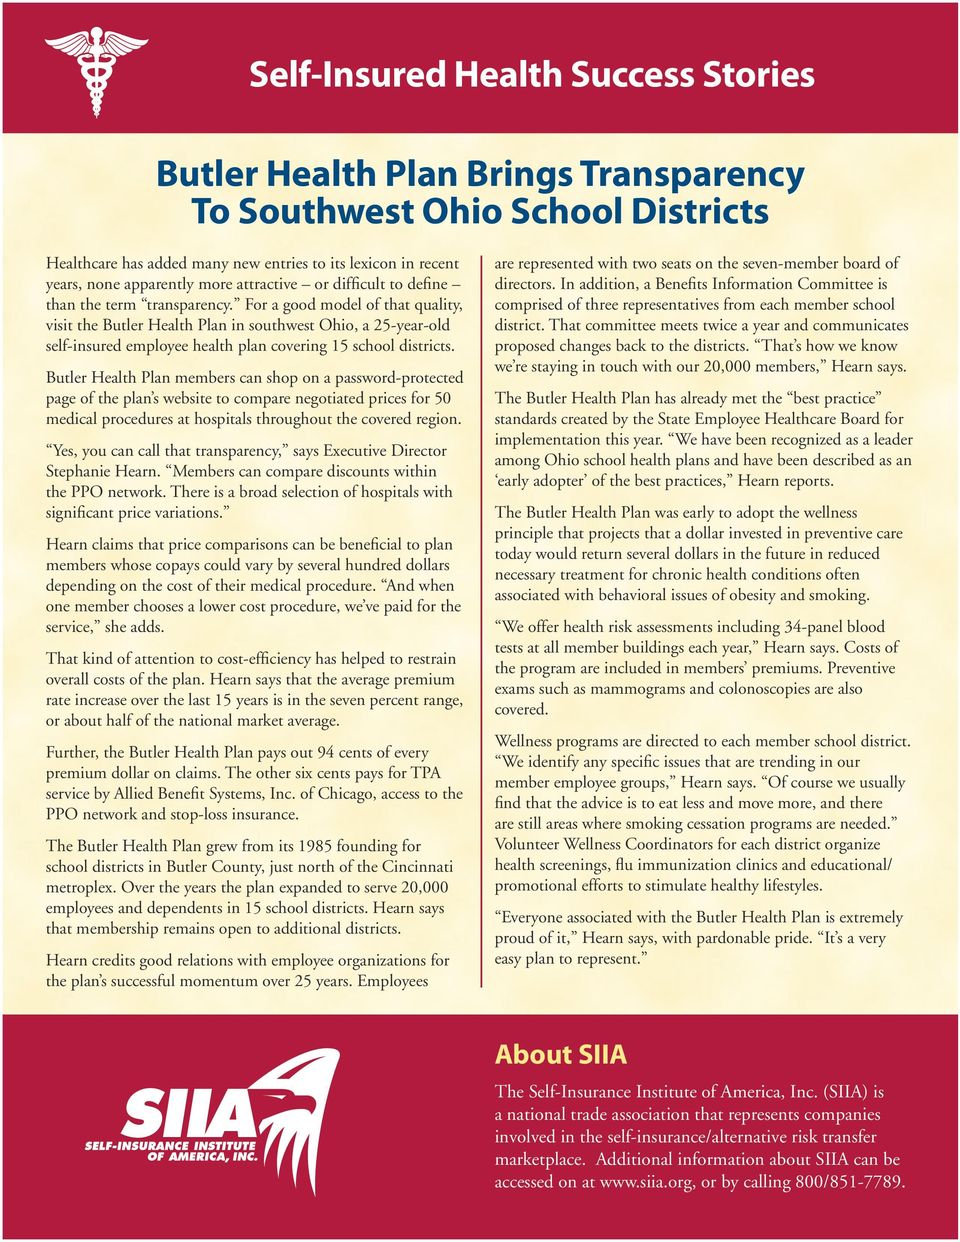 For a good model of that quality, visit the Butler Health Plan in southwest Ohio, a 25-year-old self-insured employee health plan covering 15 school districts.